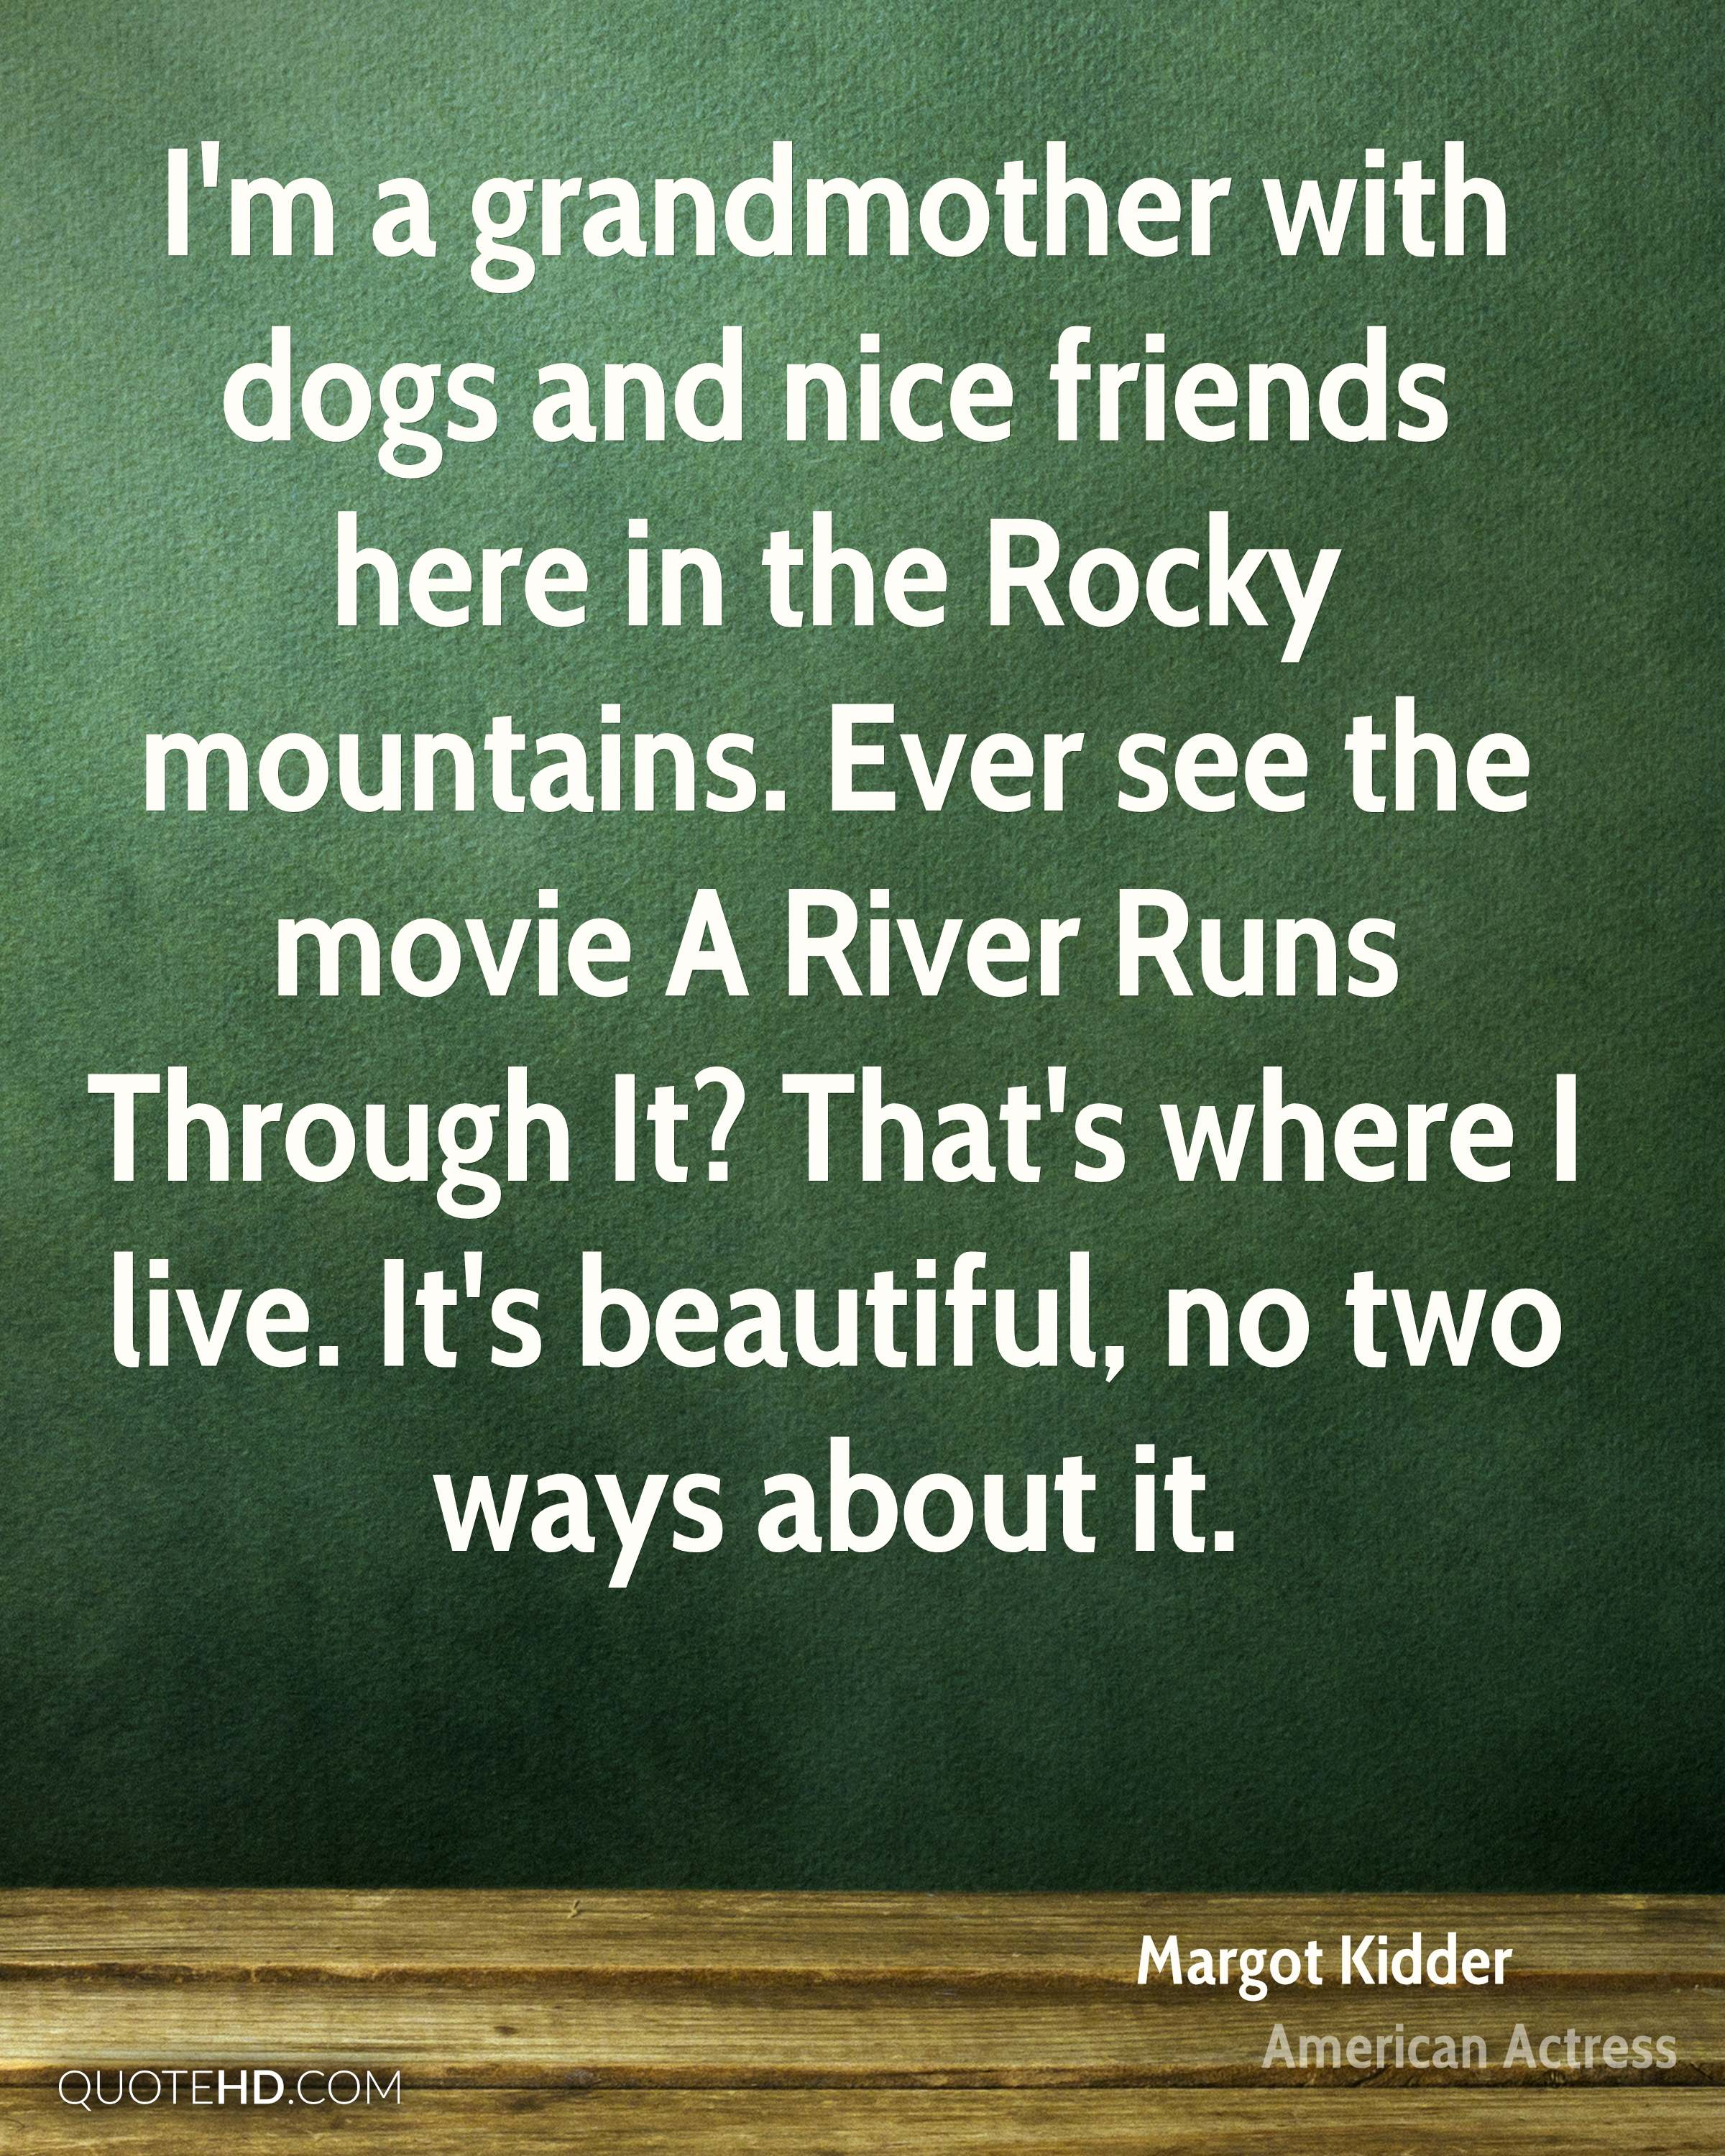 I'm a grandmother with dogs and nice friends here in the Rocky mountains. Ever see the movie A River Runs Through It? That's where I live. It's beautiful, no two ways about it.